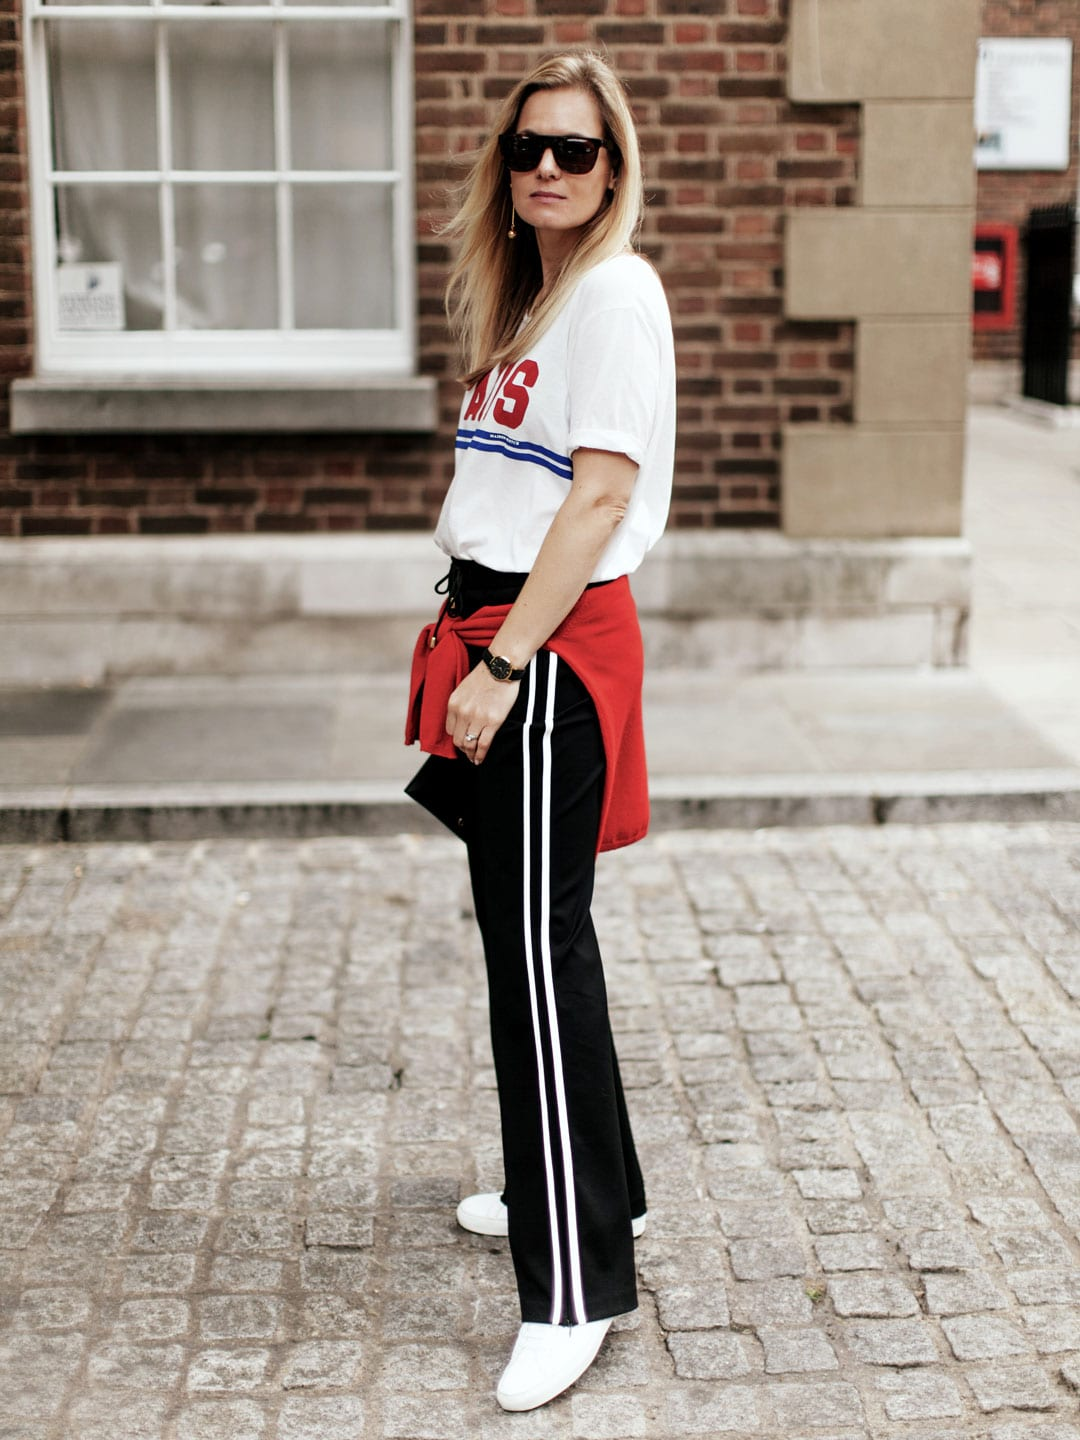 ME+EM Stripe Tailored Track Pant, Maison Scotch Paris T-shirt, Chinti & Parker Good Girl Bad Girl Sweater